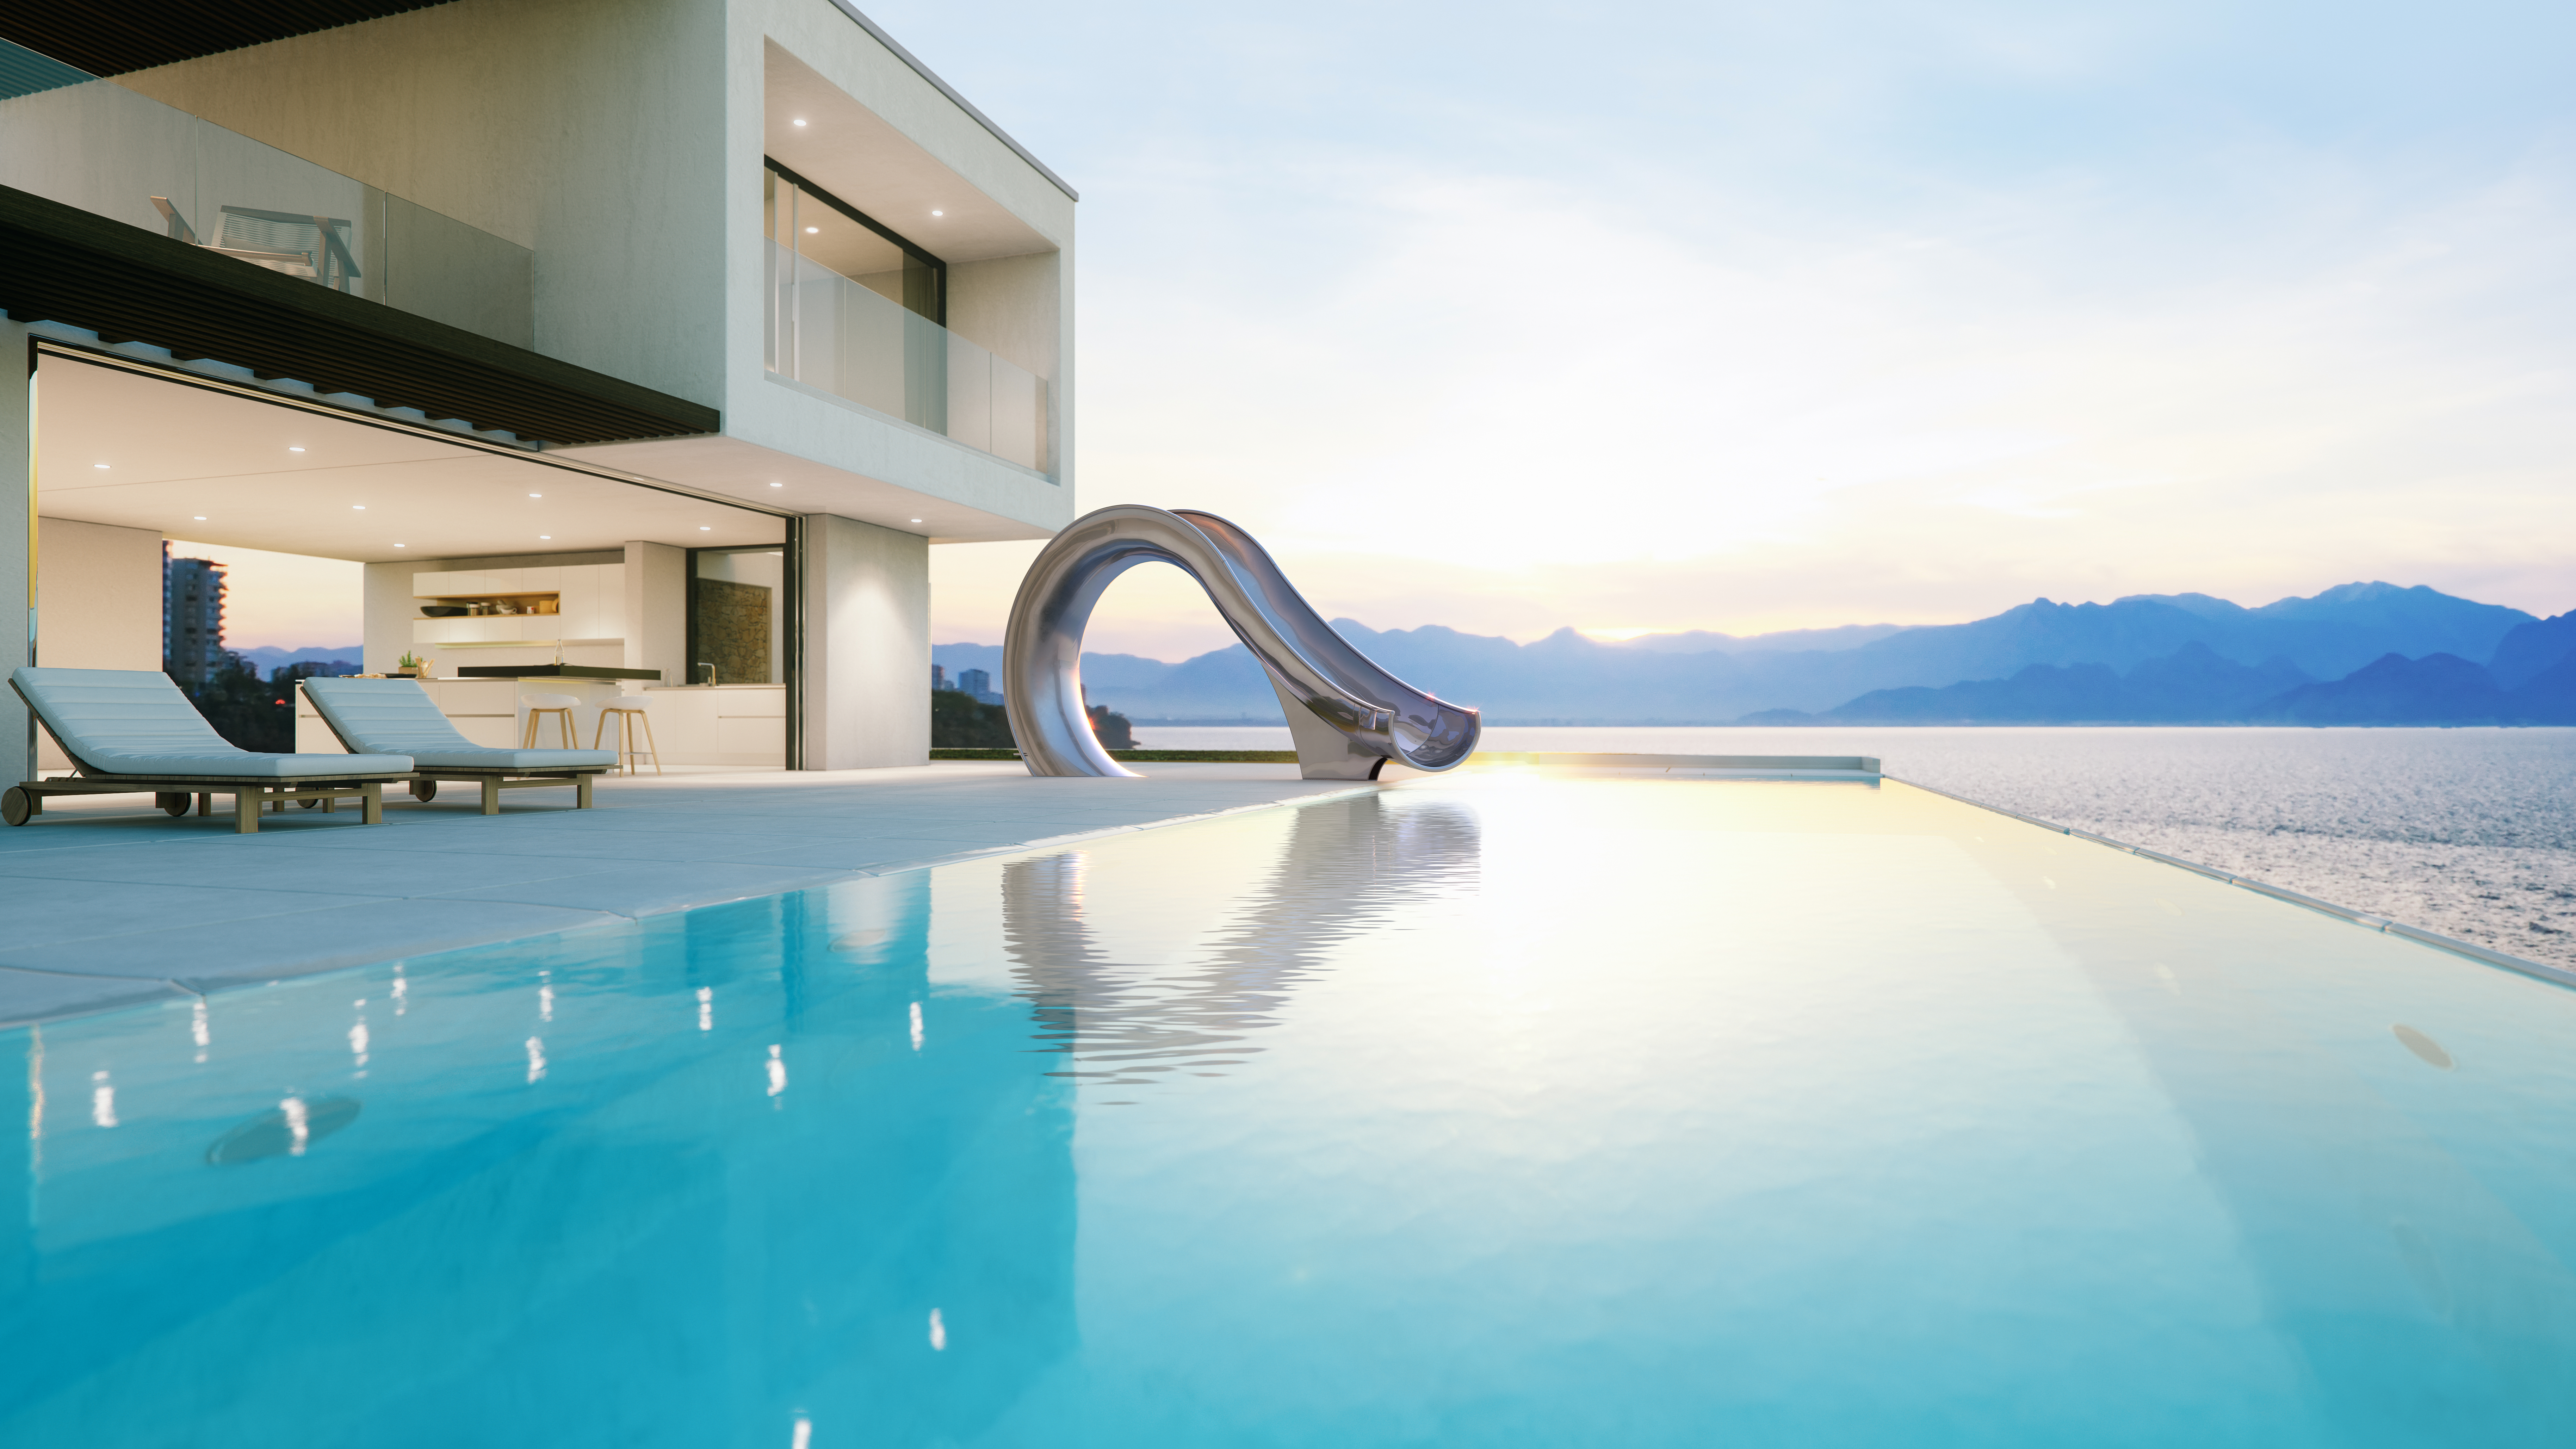 Pool side sculptural water slide next to modern house at sunset